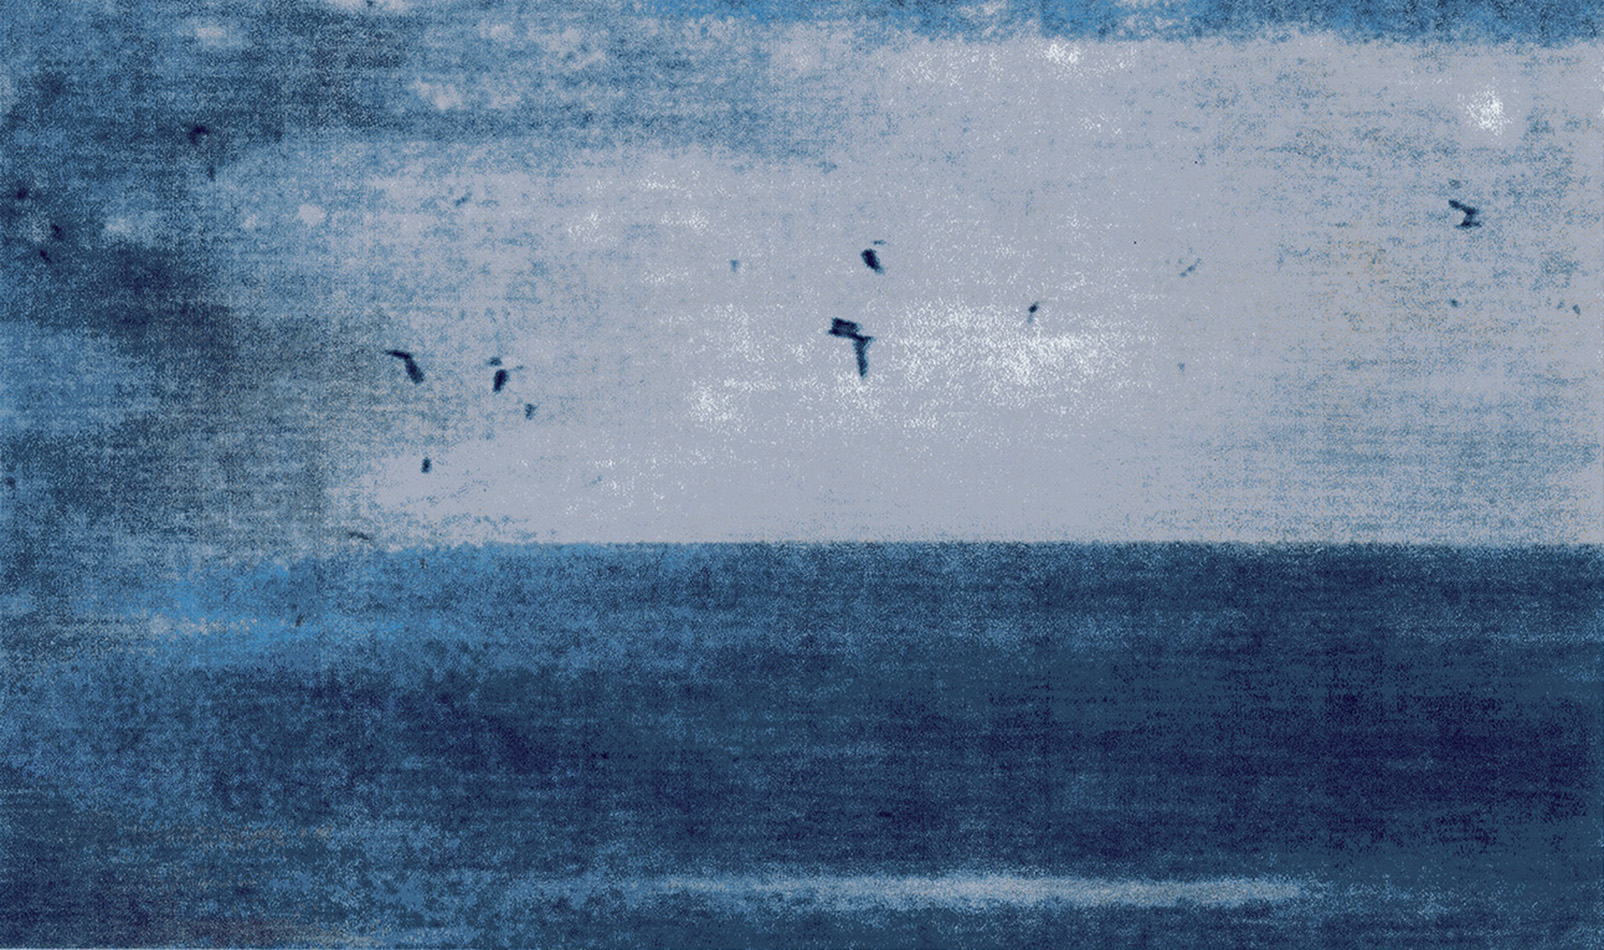 The birds followed them out into the vastness of the sea, after Herz aus Glas from Werner Herzog, 2014